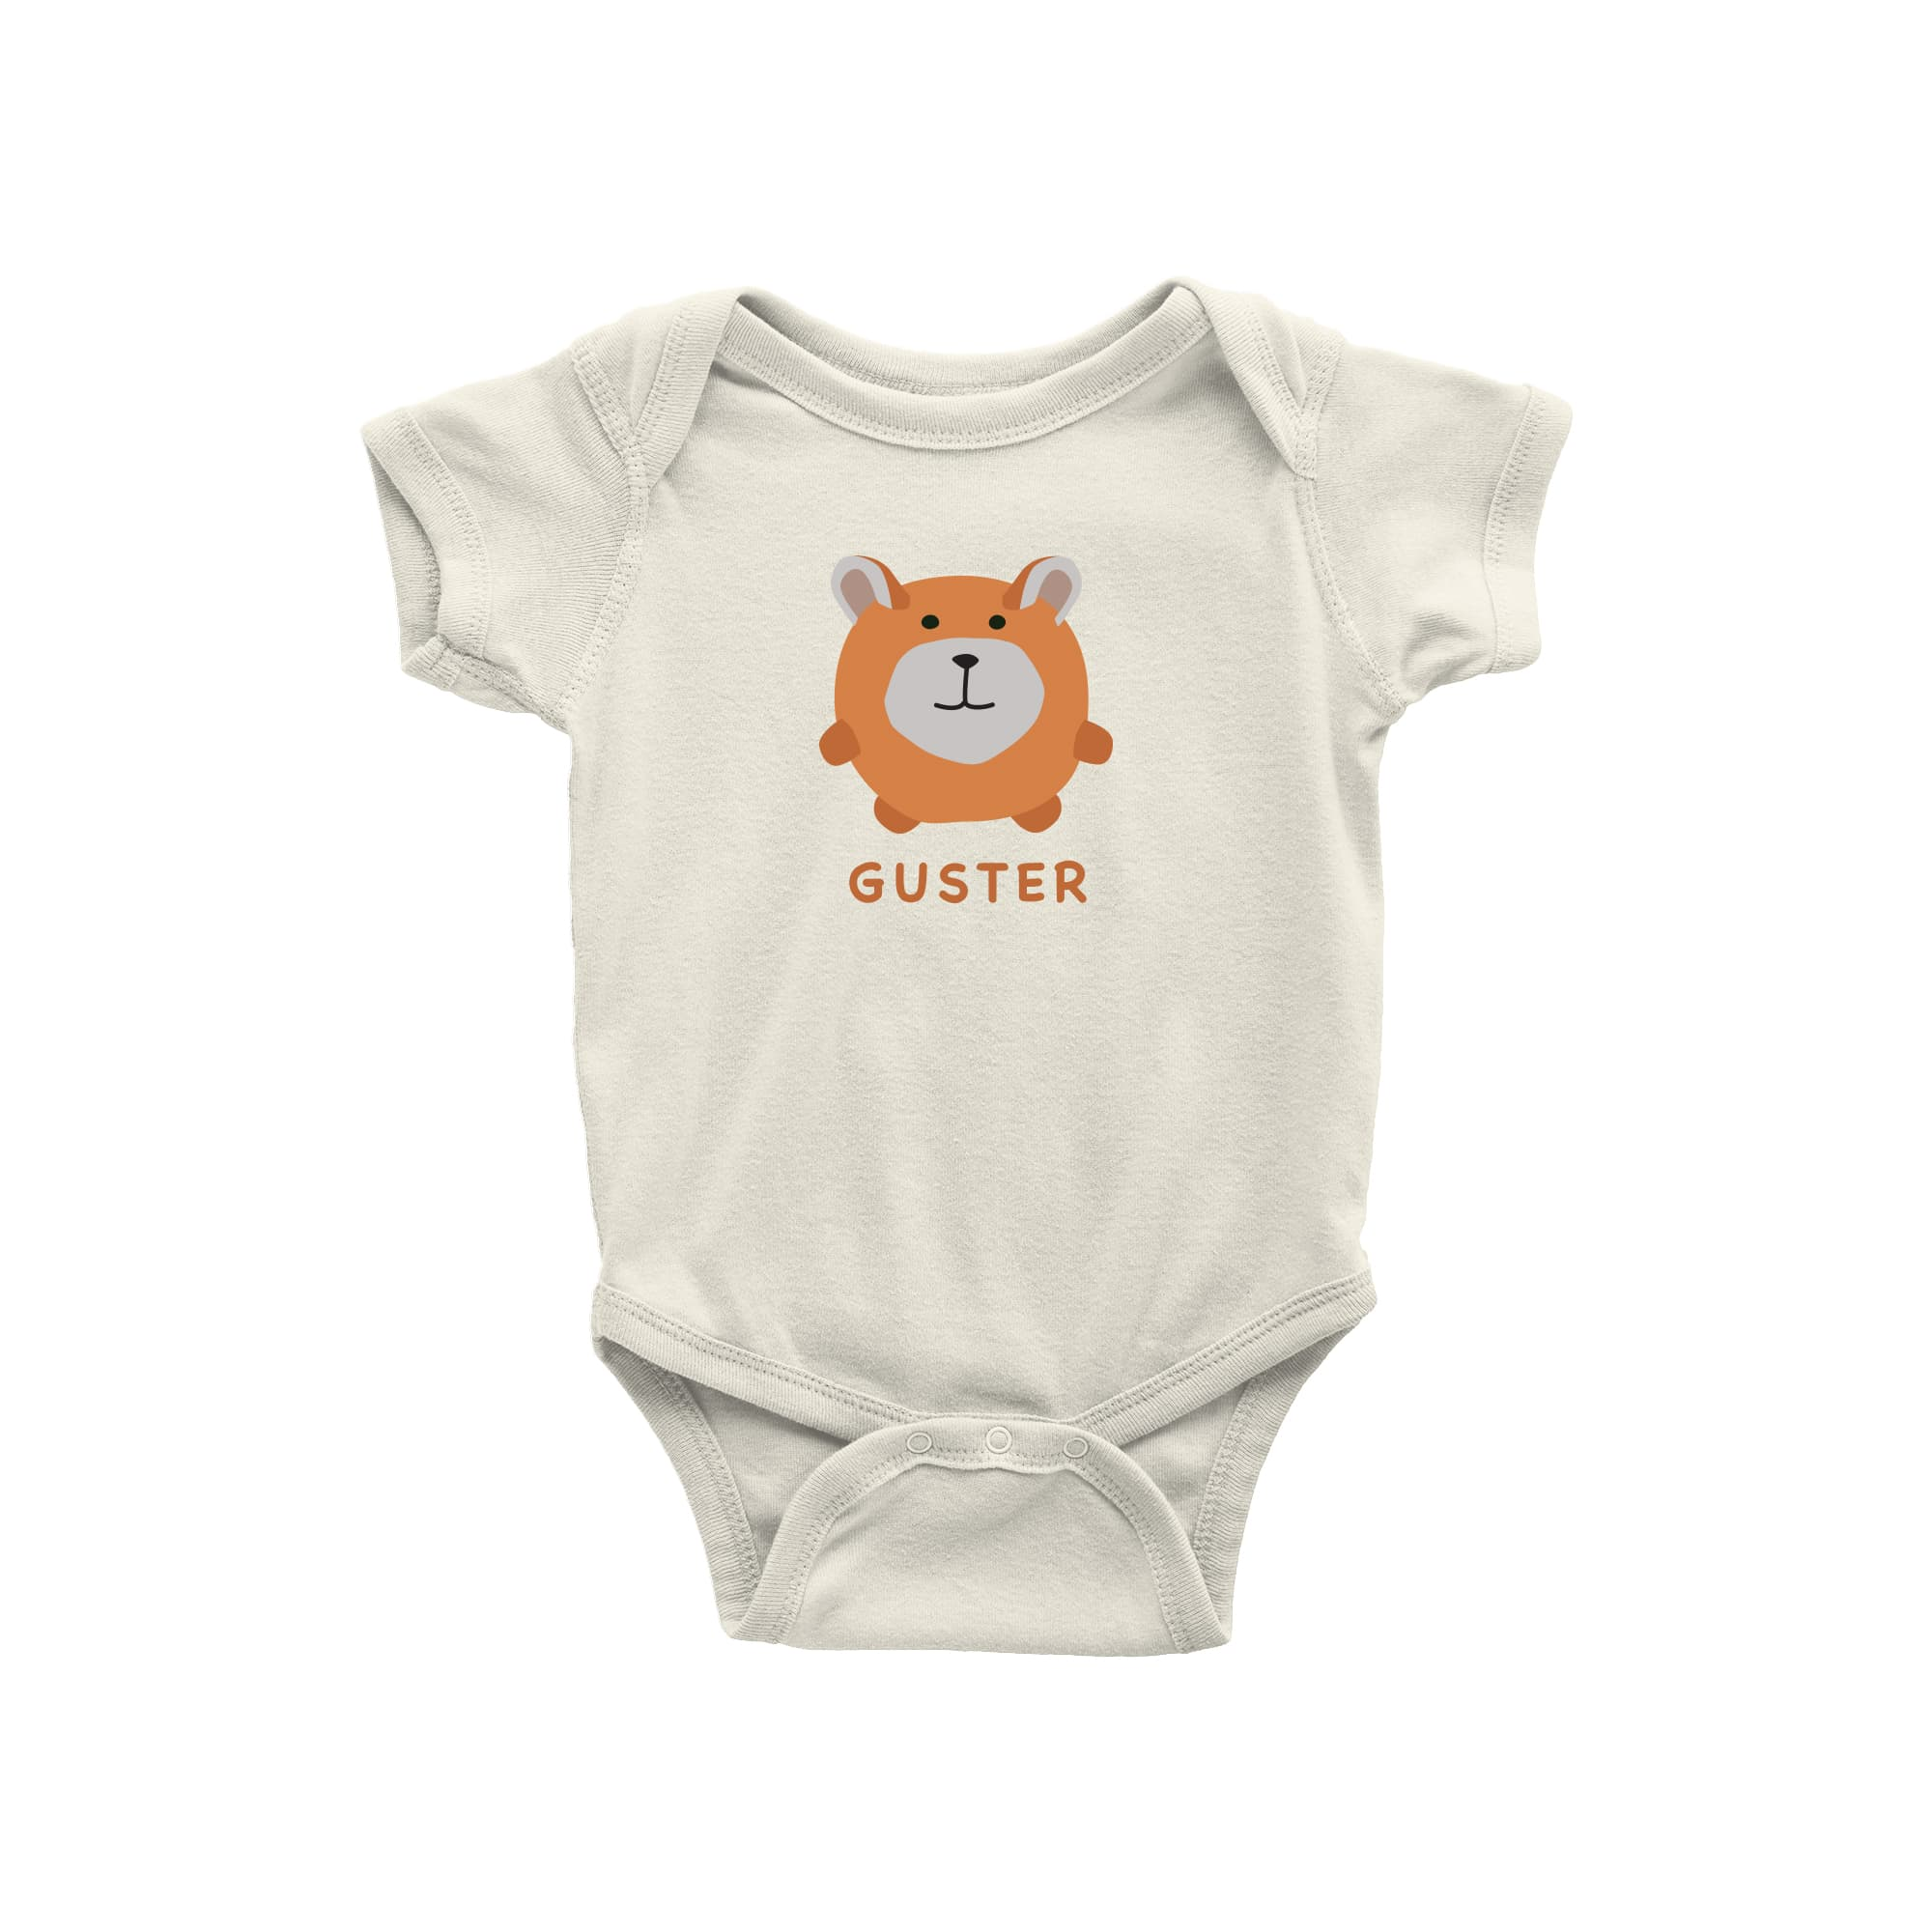 'Little Friend' Baby Onesie